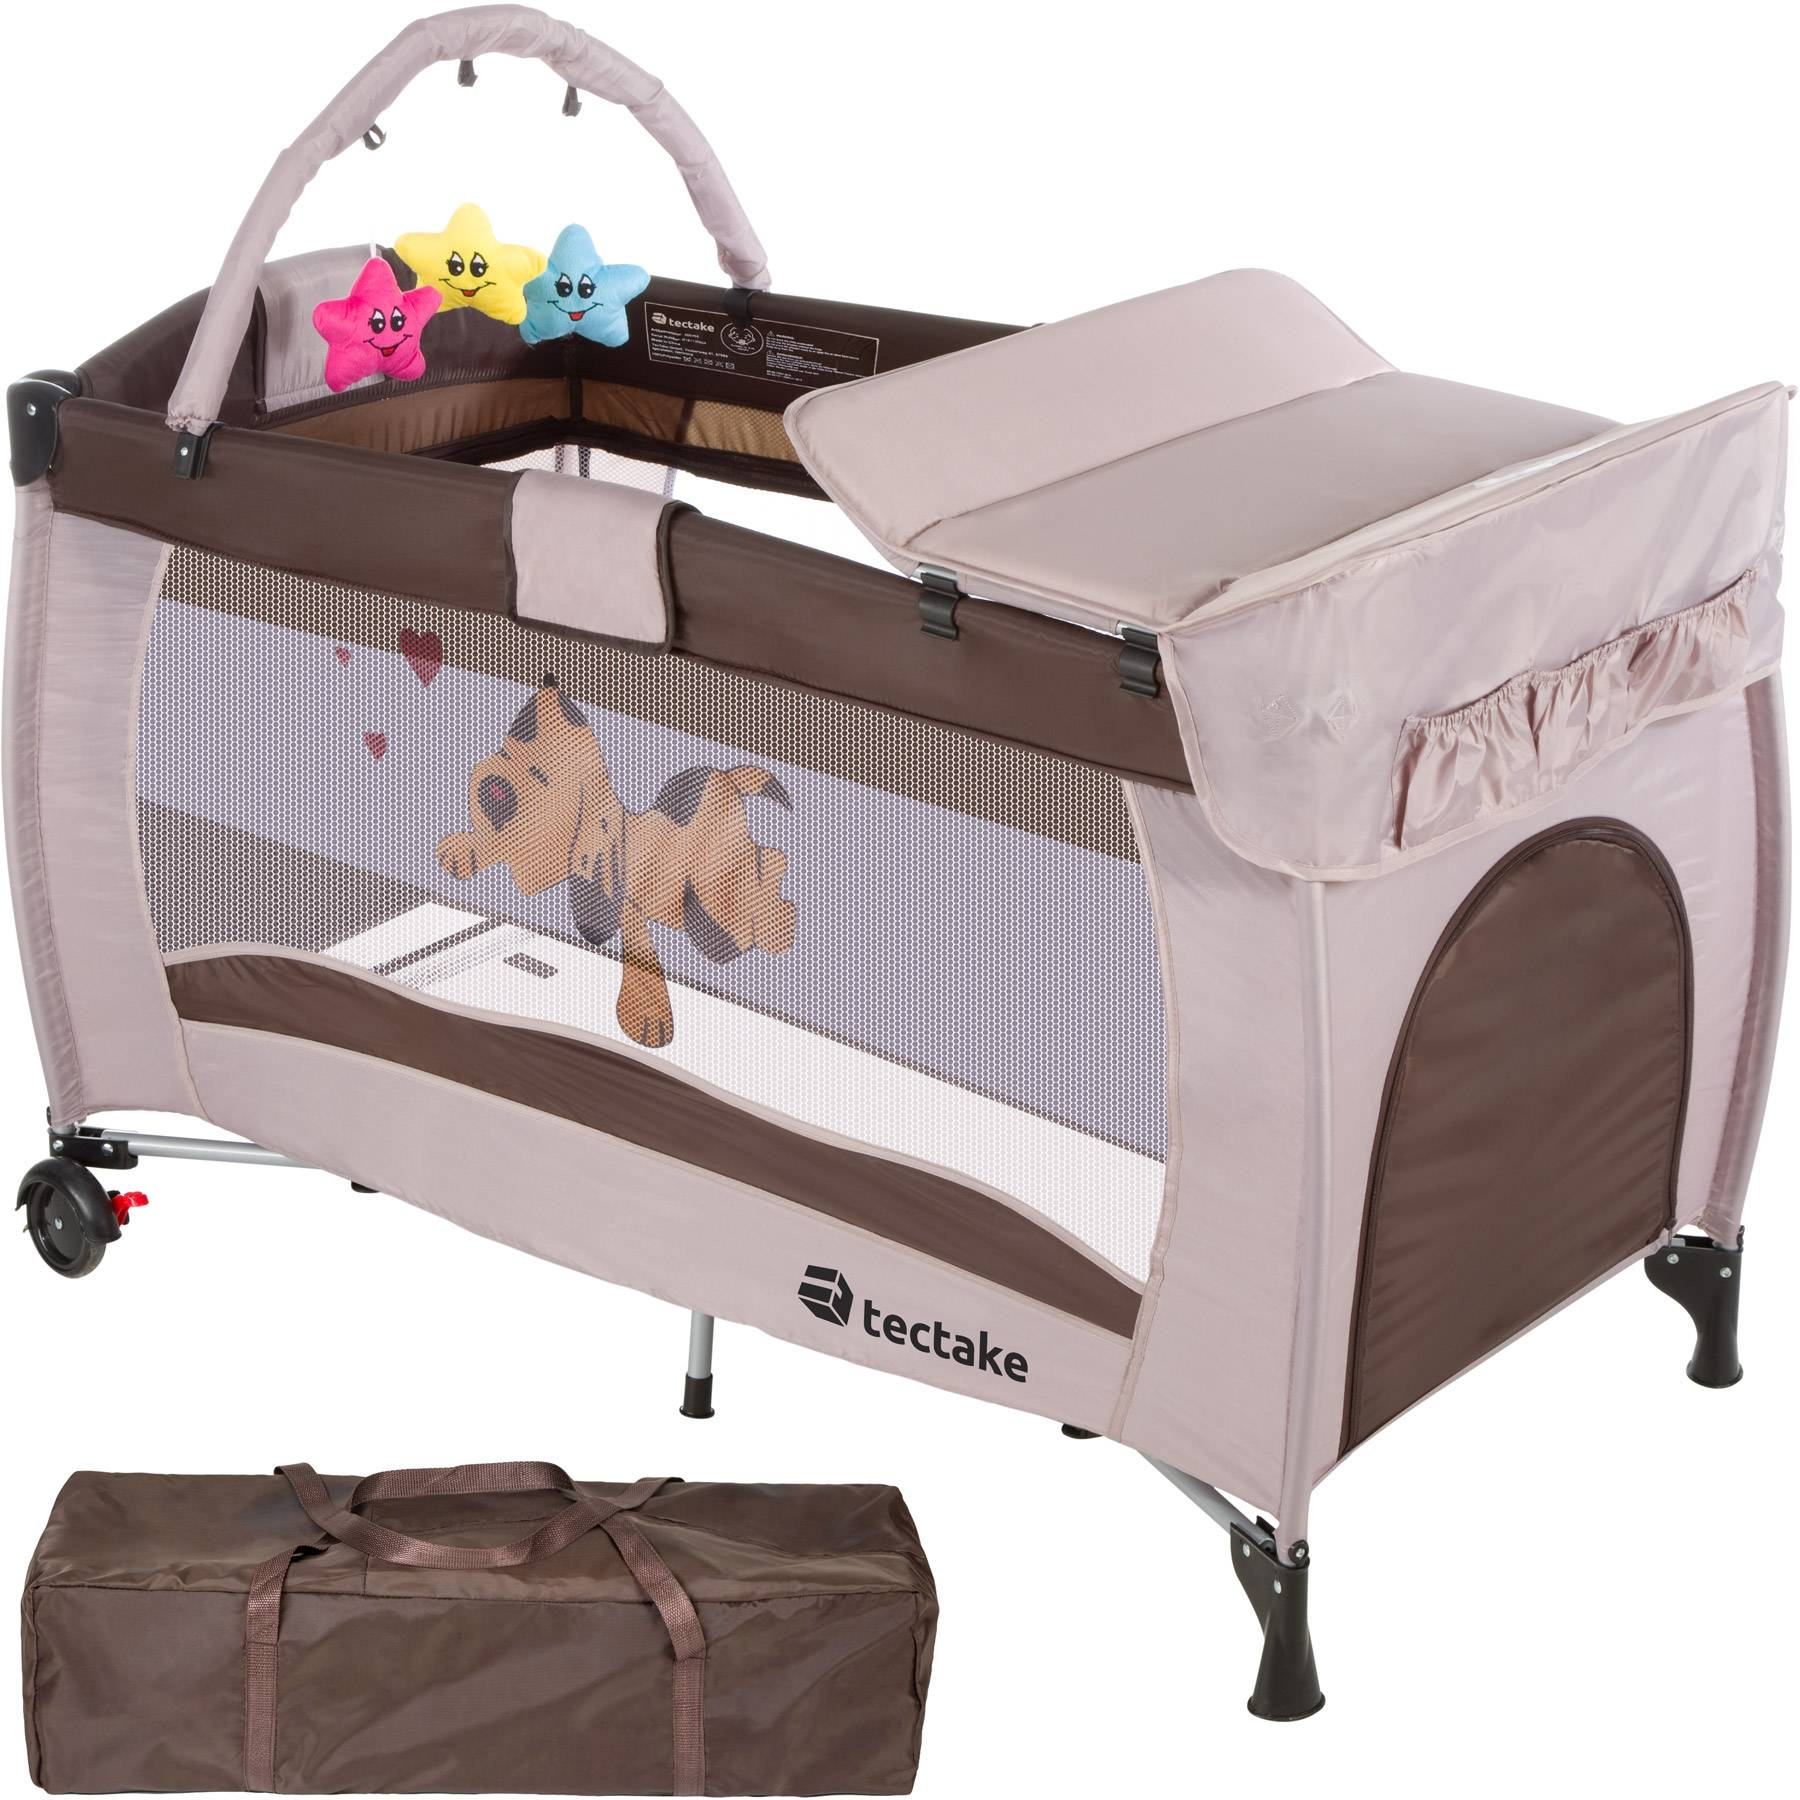 tectake Travel cot dog with changing mat and play bar - brown